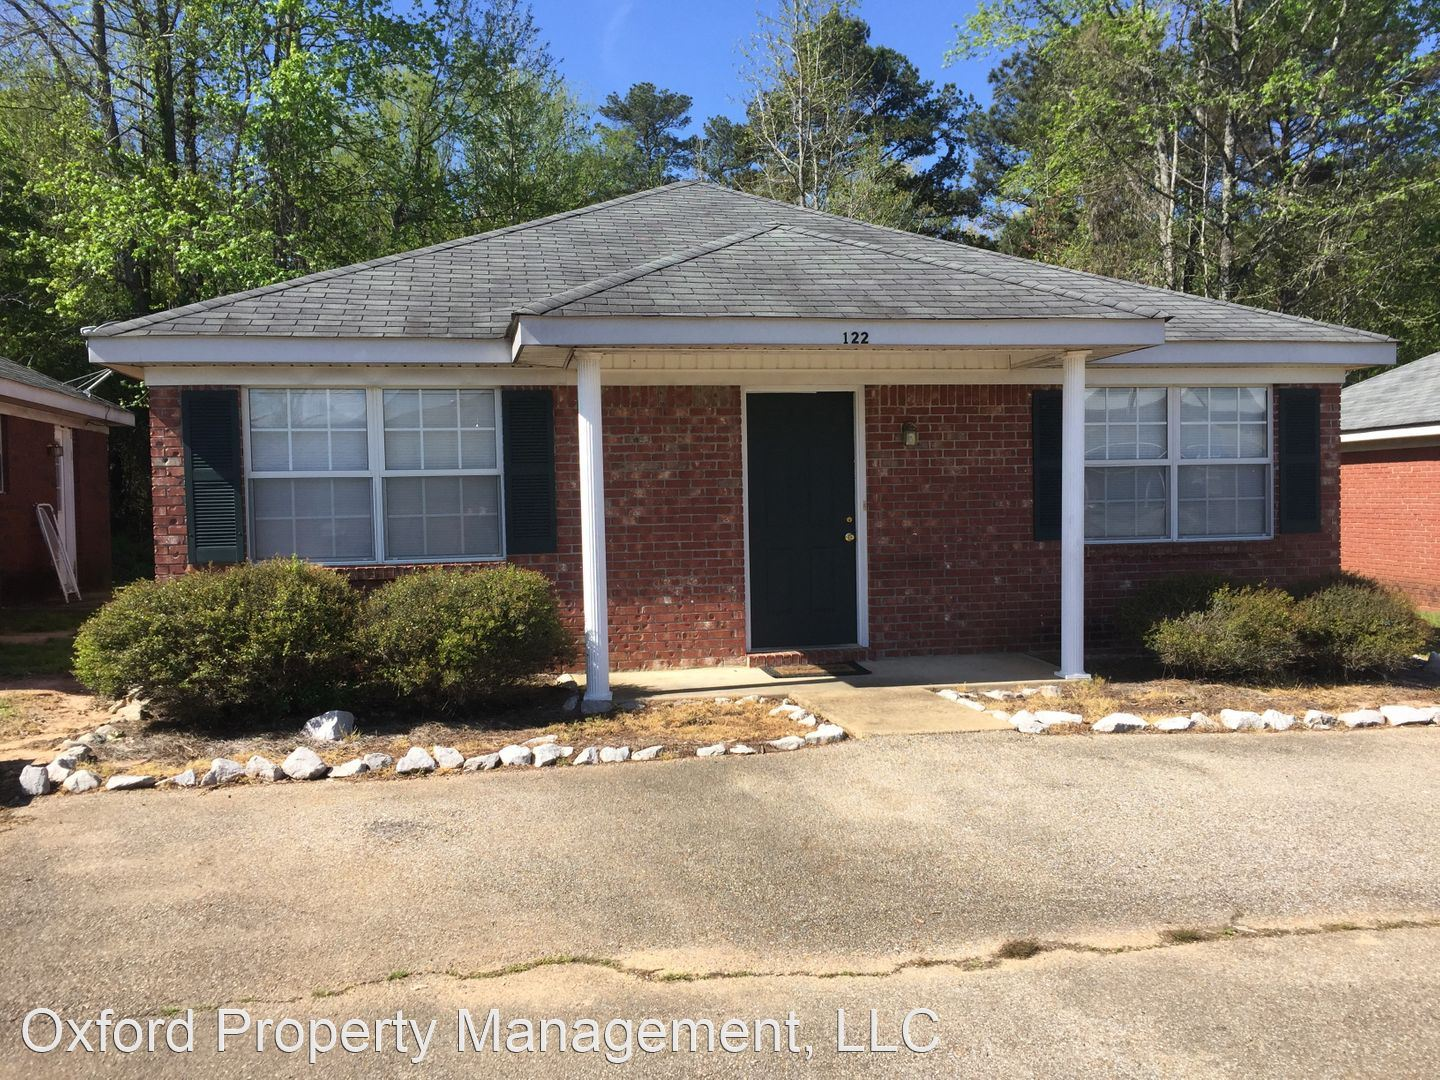 Taylor Meadows Drive, Oxford, MS - $850